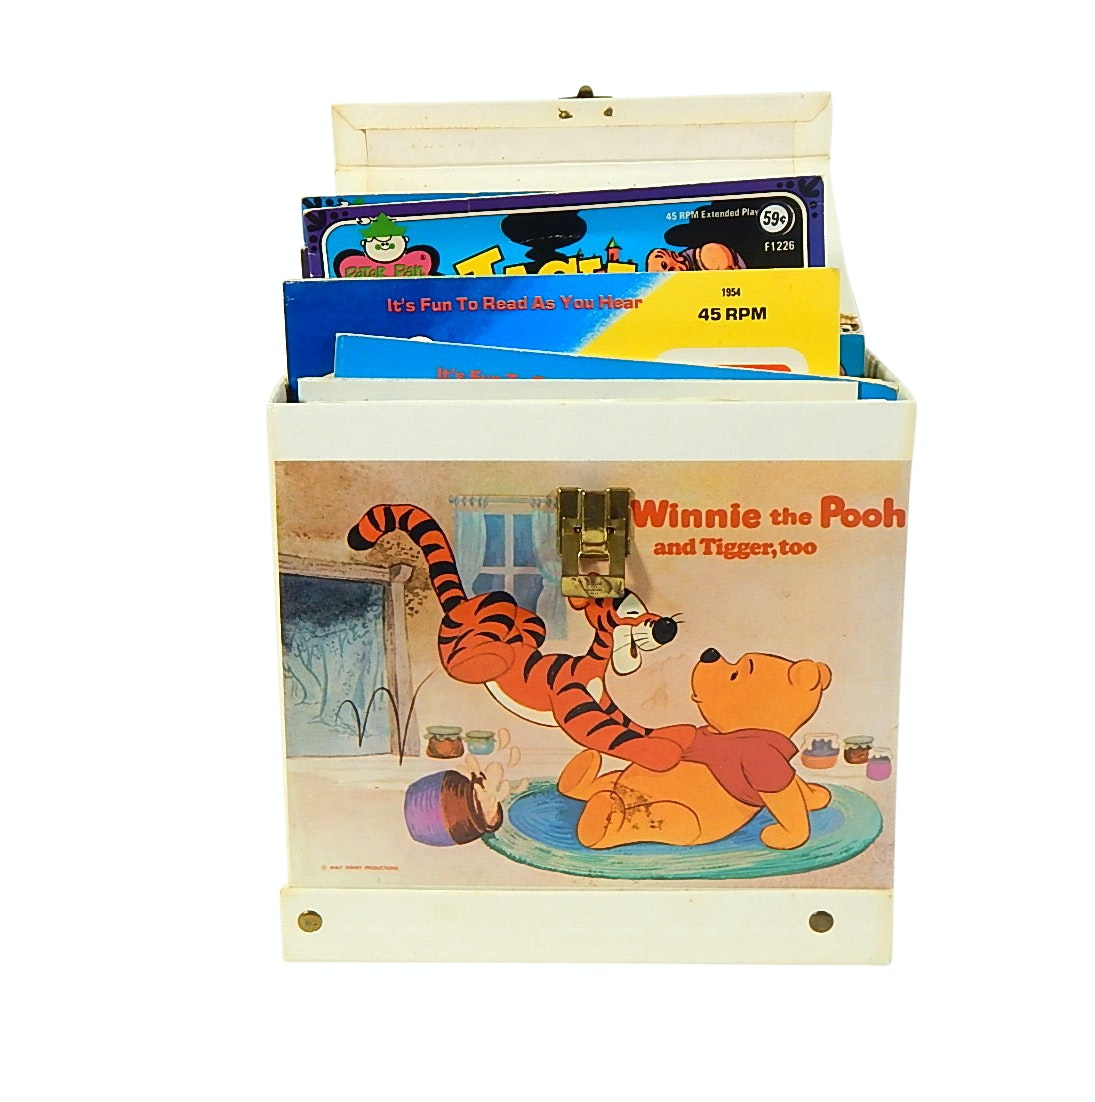 Winnie the Pooh Vinyl Covered Story Book and Album Storage Box